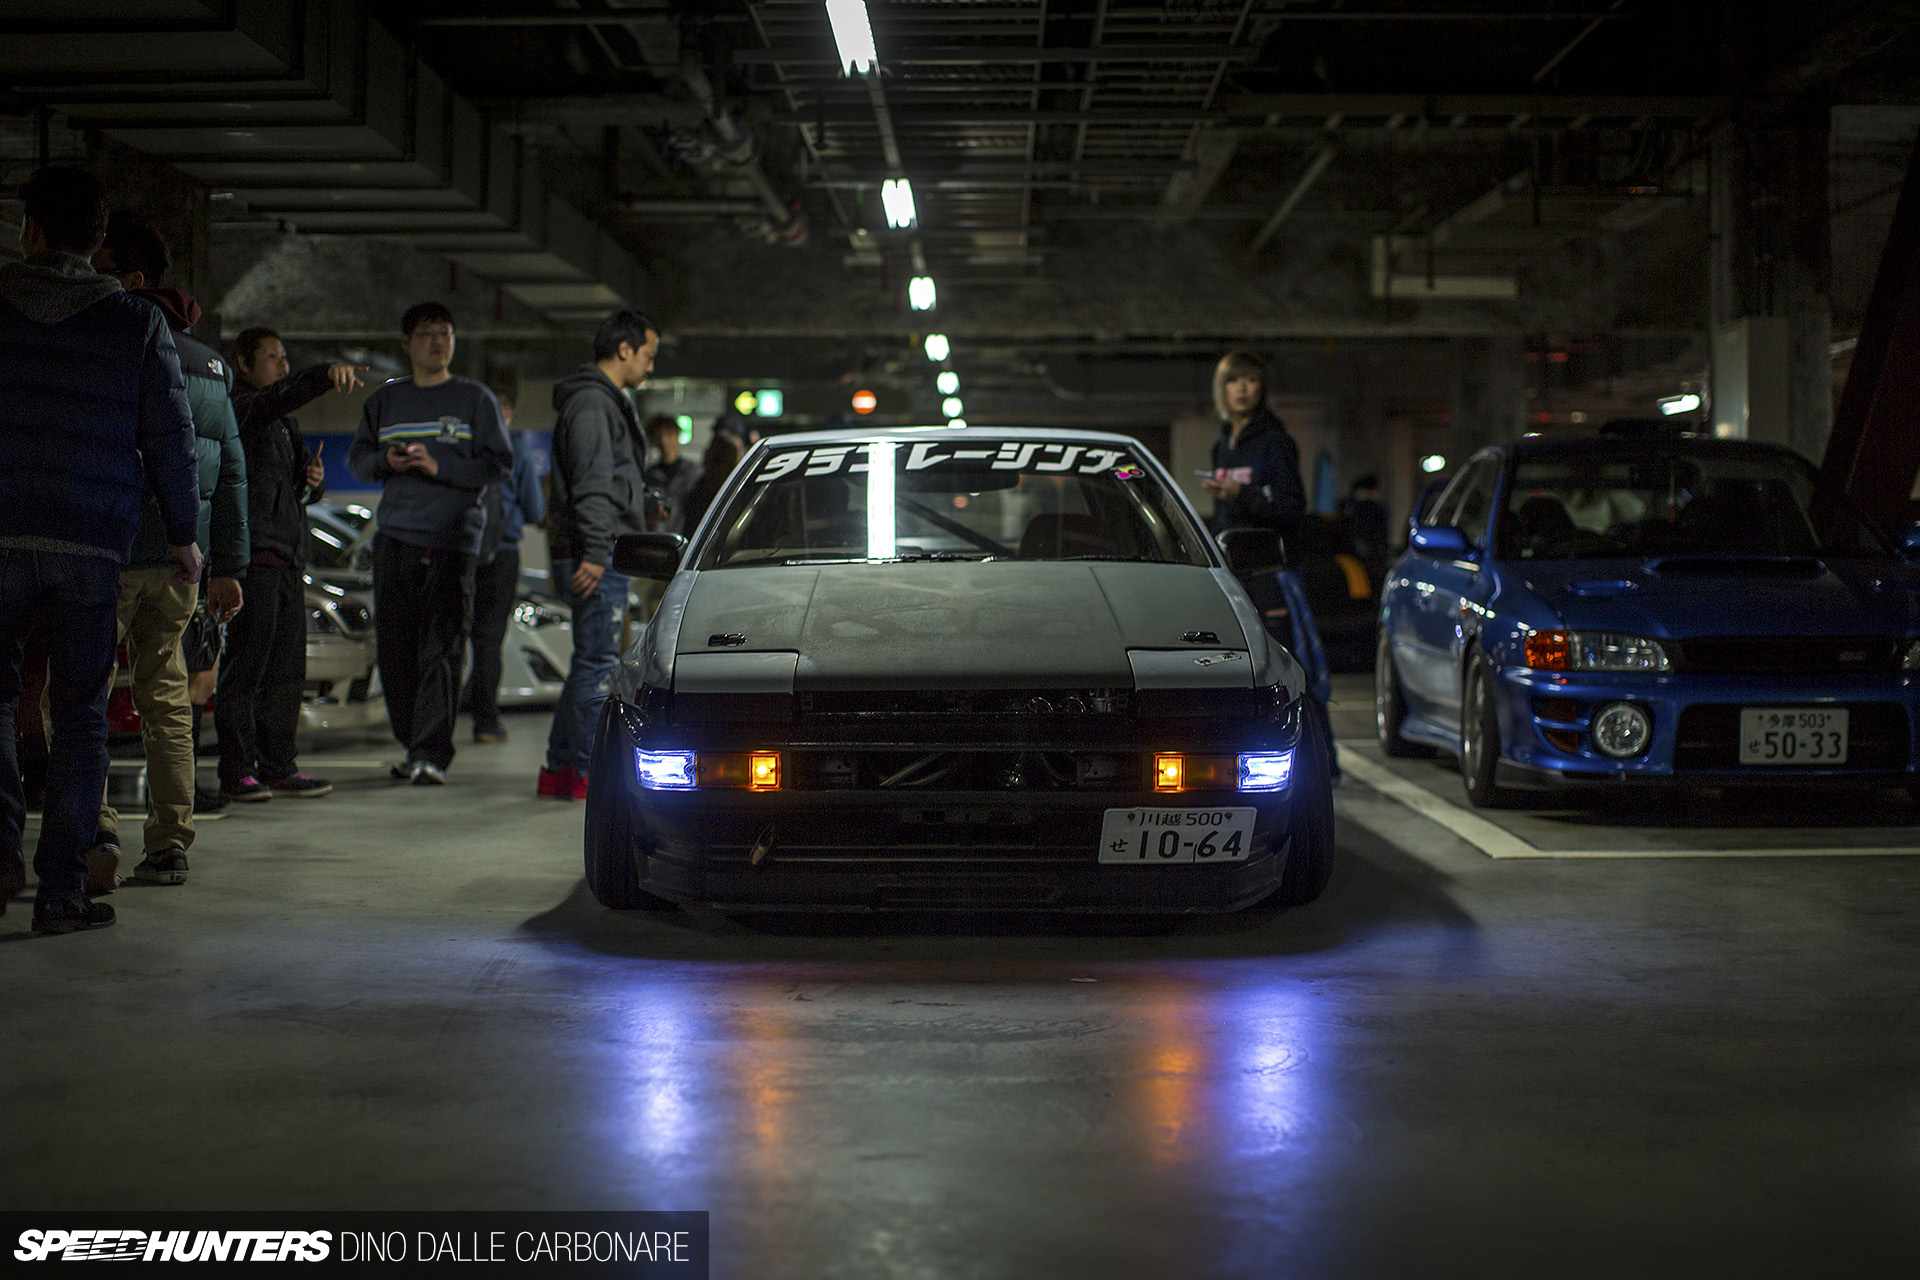 Taking Over The City Tokyo Fresh Meet Speedhunters